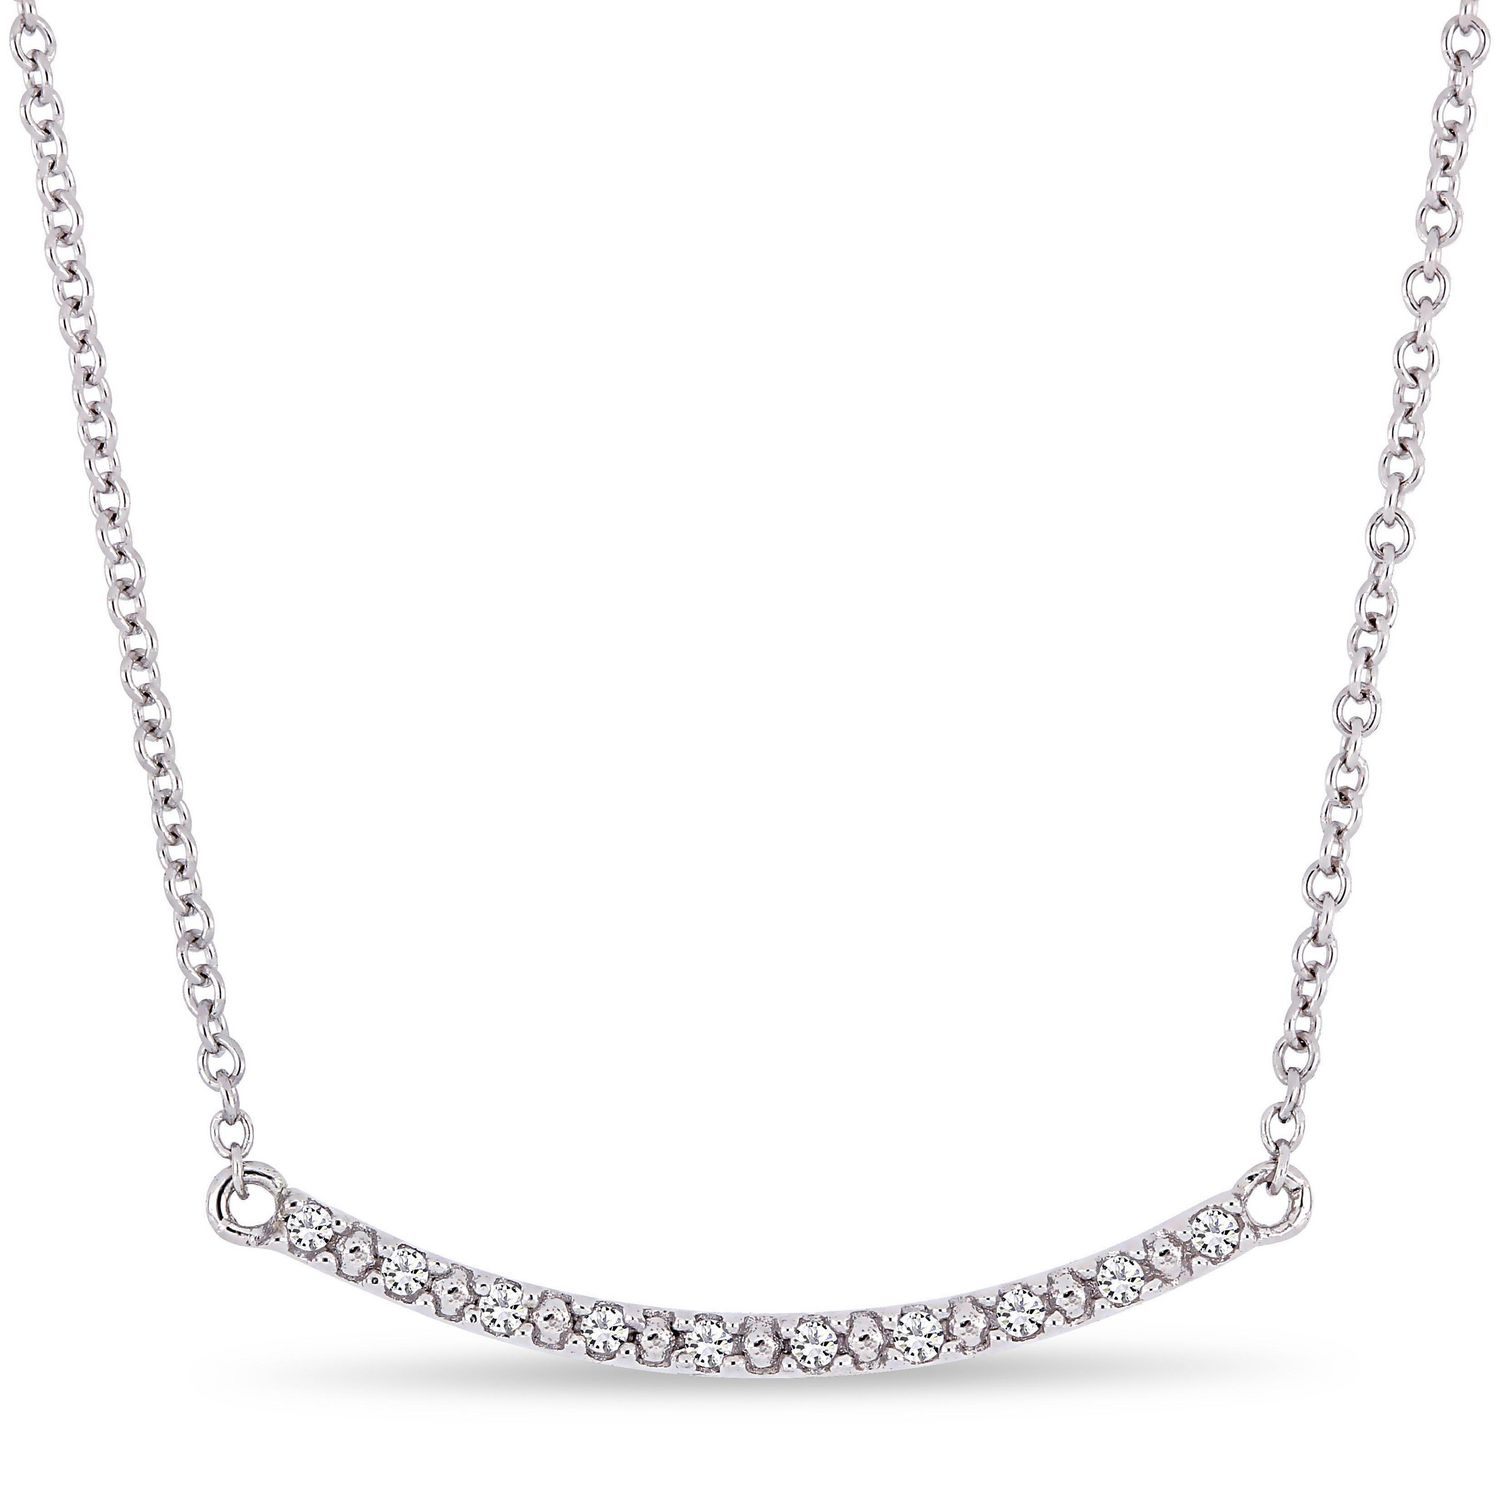 Cutie Pie Diamond Accent 10k White Gold Curved Bar Necklace Regarding Most Recent Sparkling Curved Bar Necklaces (View 9 of 25)